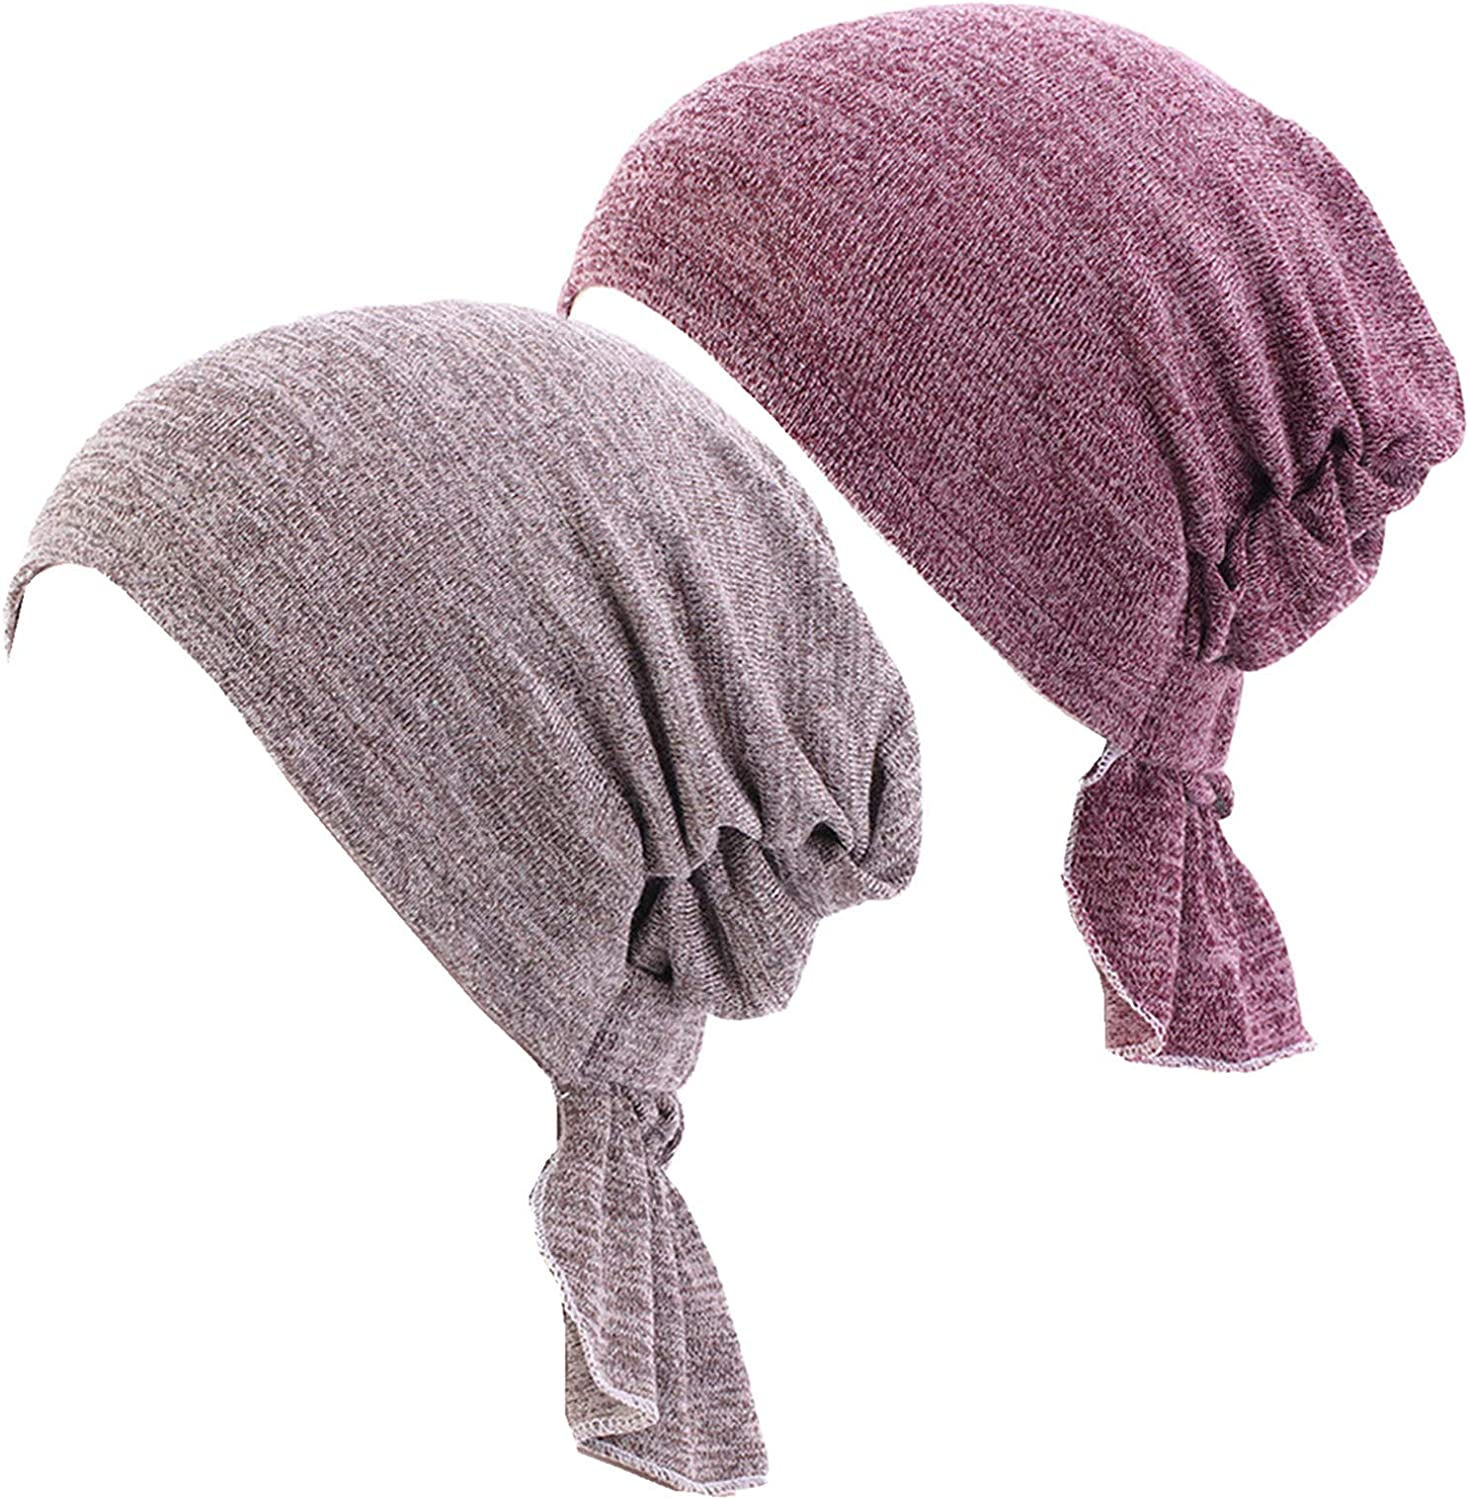 New product!! Hijab Cancer Chemo Stretchy Cotton Hat Cover Selling Hair Turban Cap Los